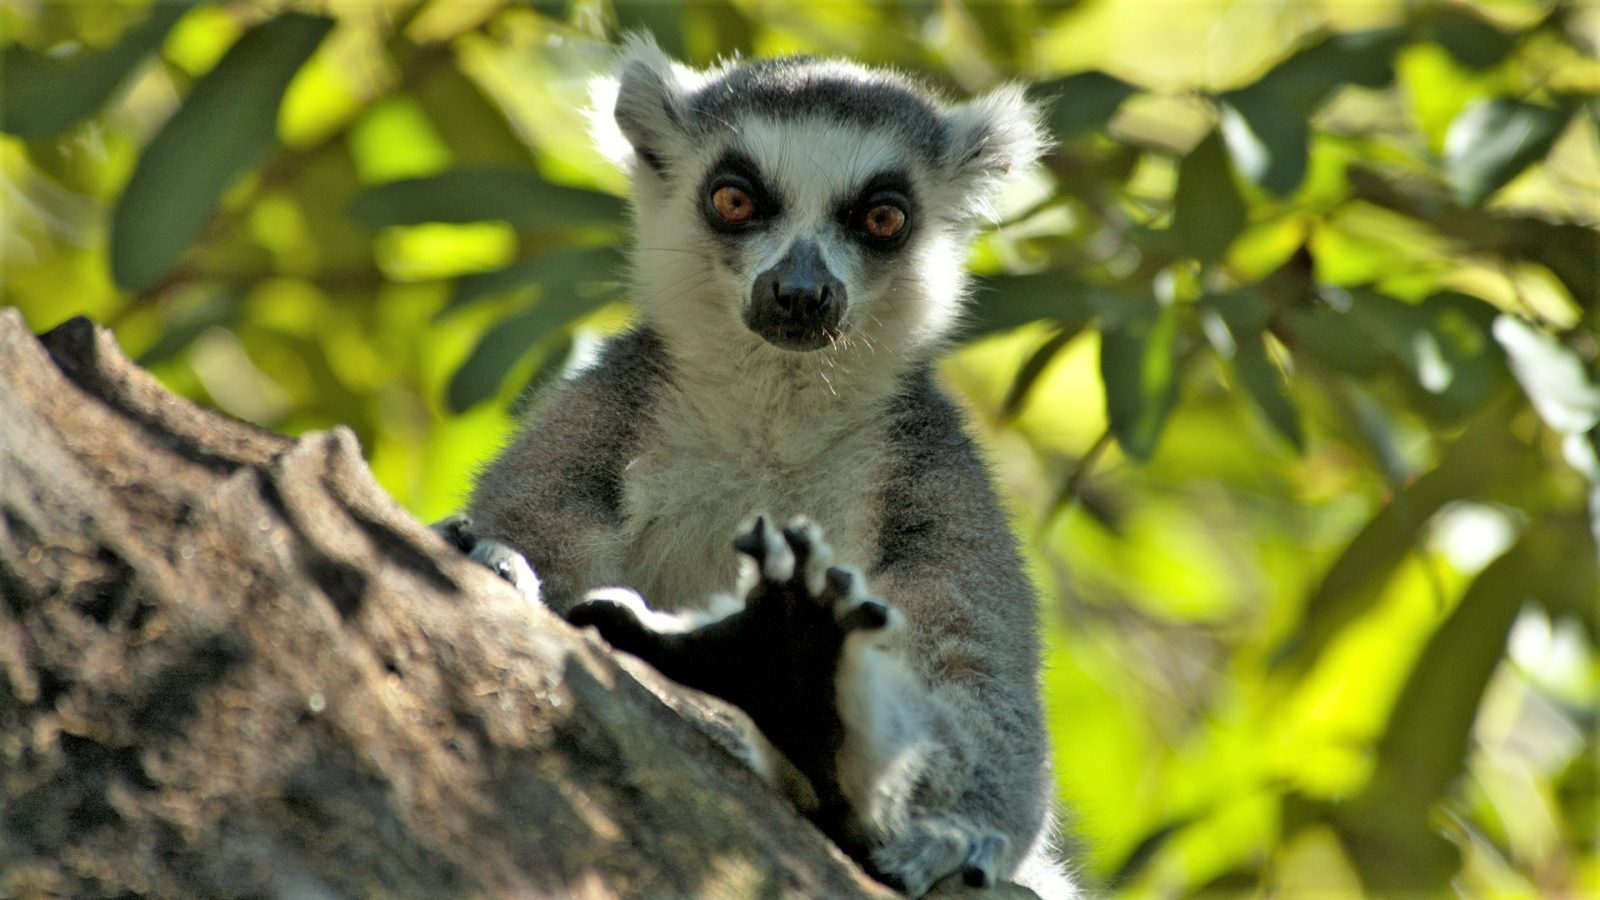 Wildlife Photographer - Lemurs in Madagascar